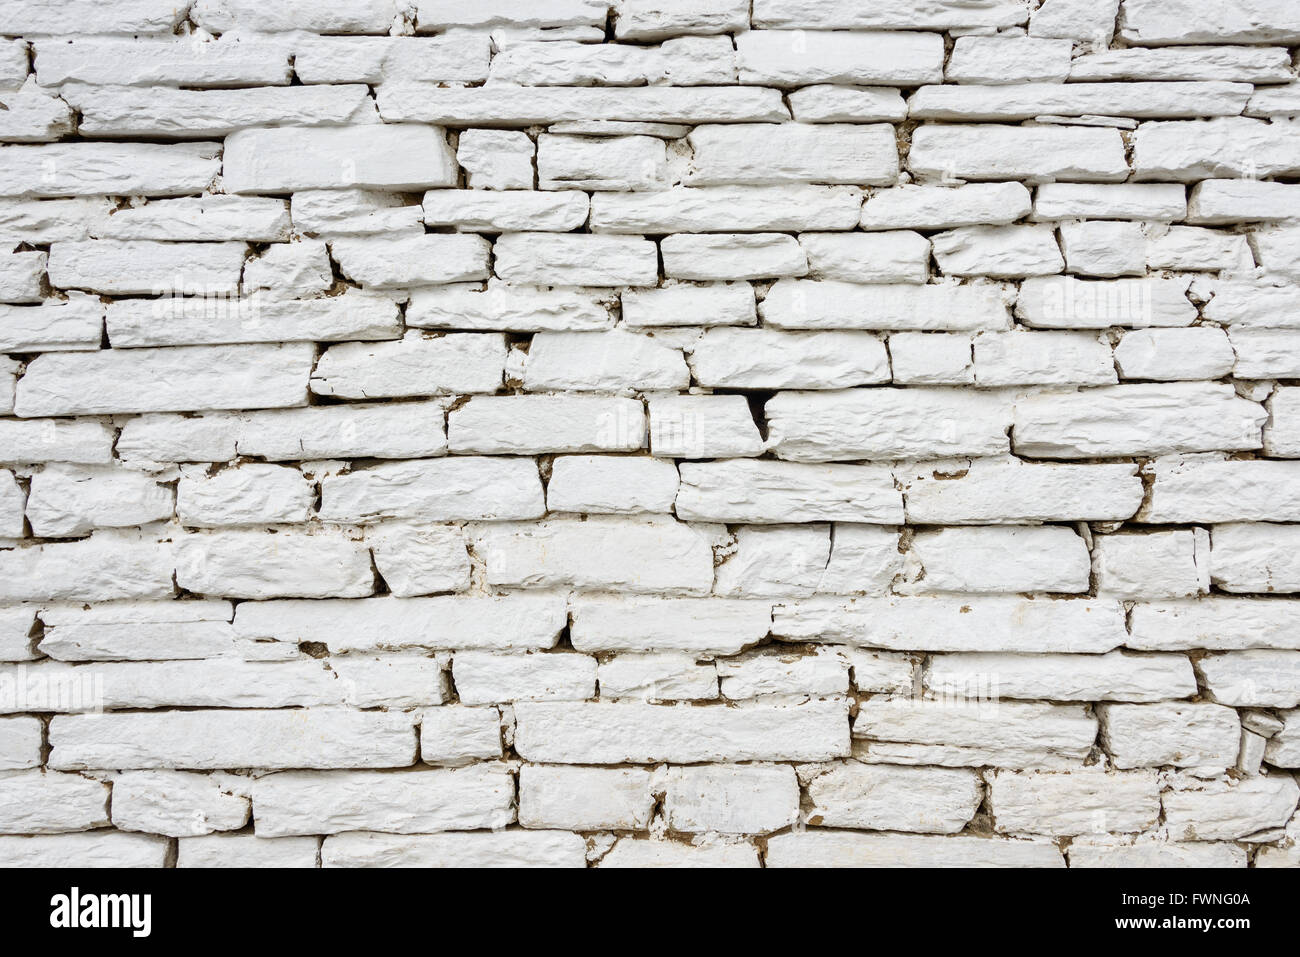 White stone wall texture or background - Stock Image